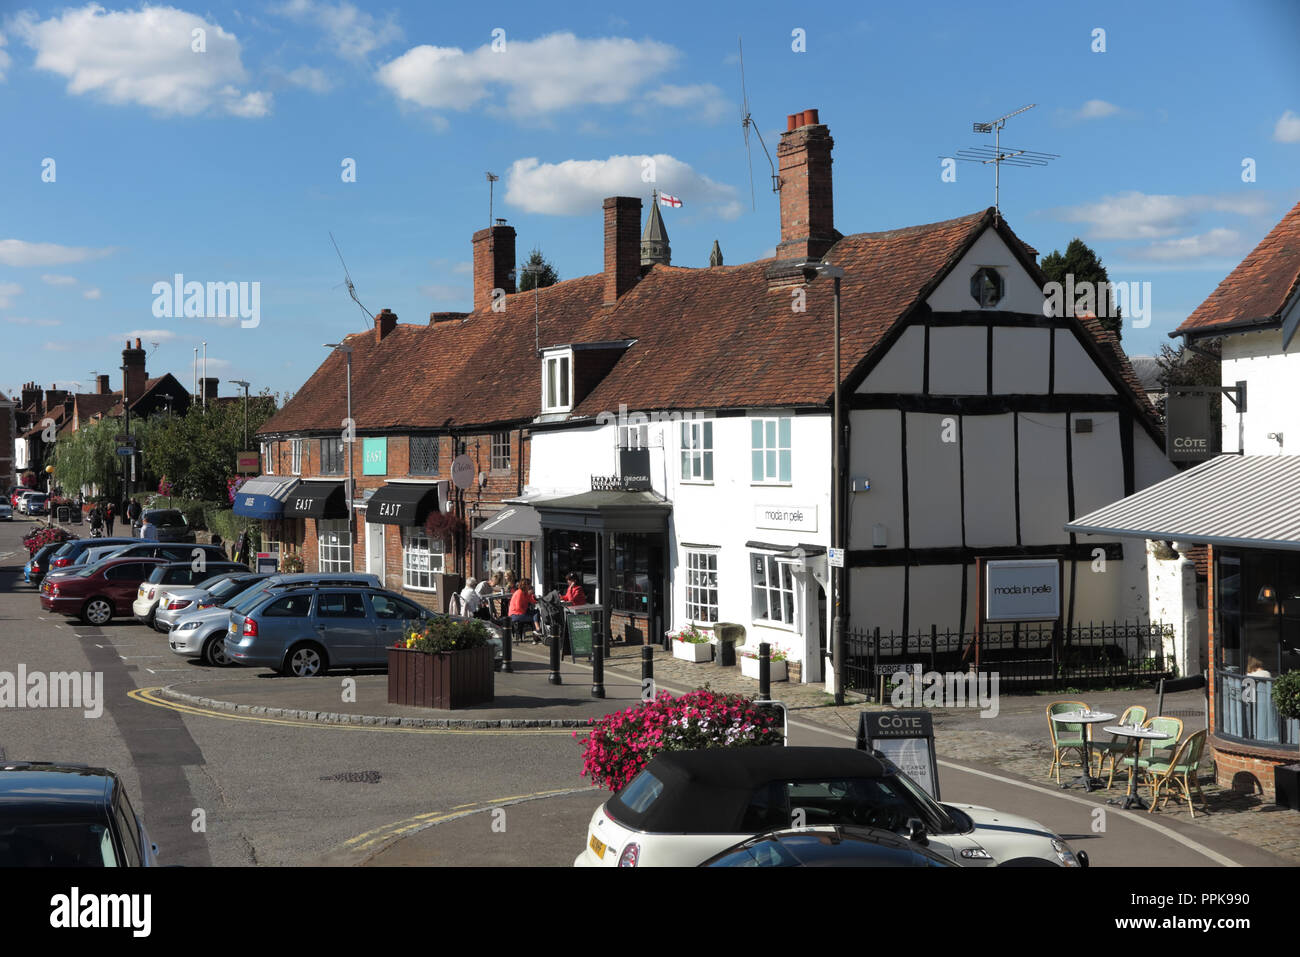 The Broadway, Amersham, Buckinghamshire - Stock Image